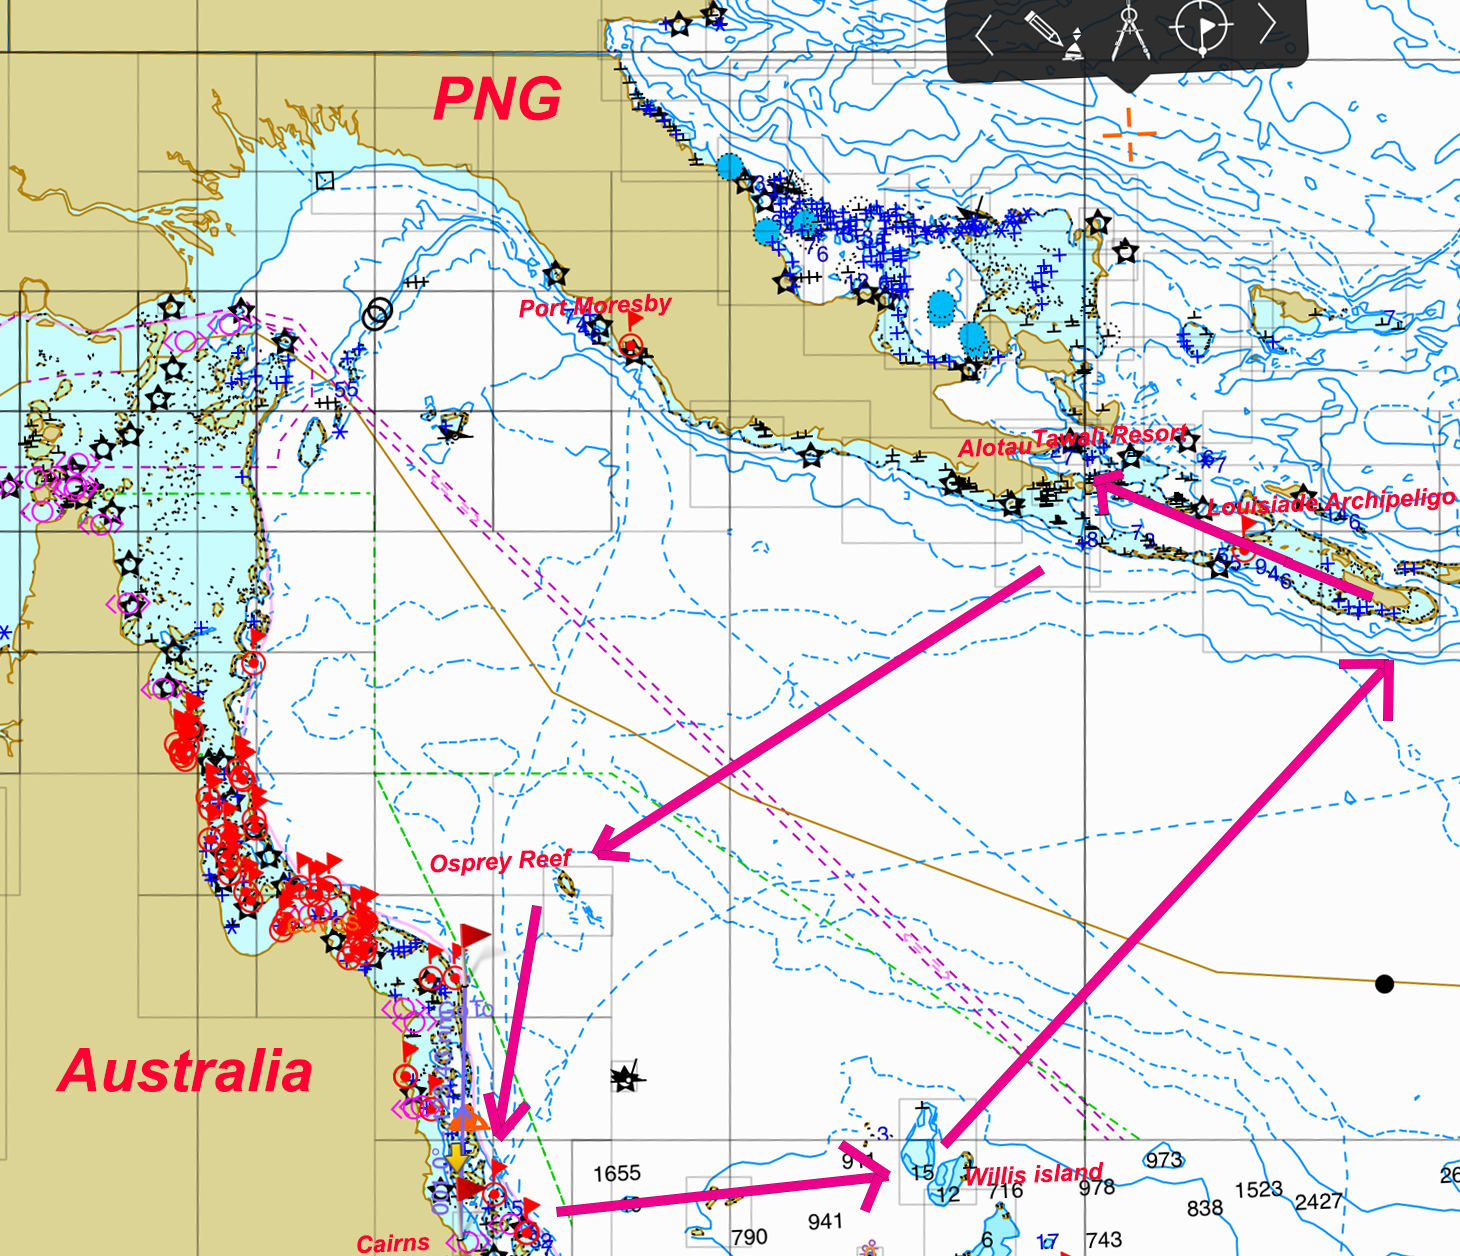 Cruising PNG Milne bay province 2016